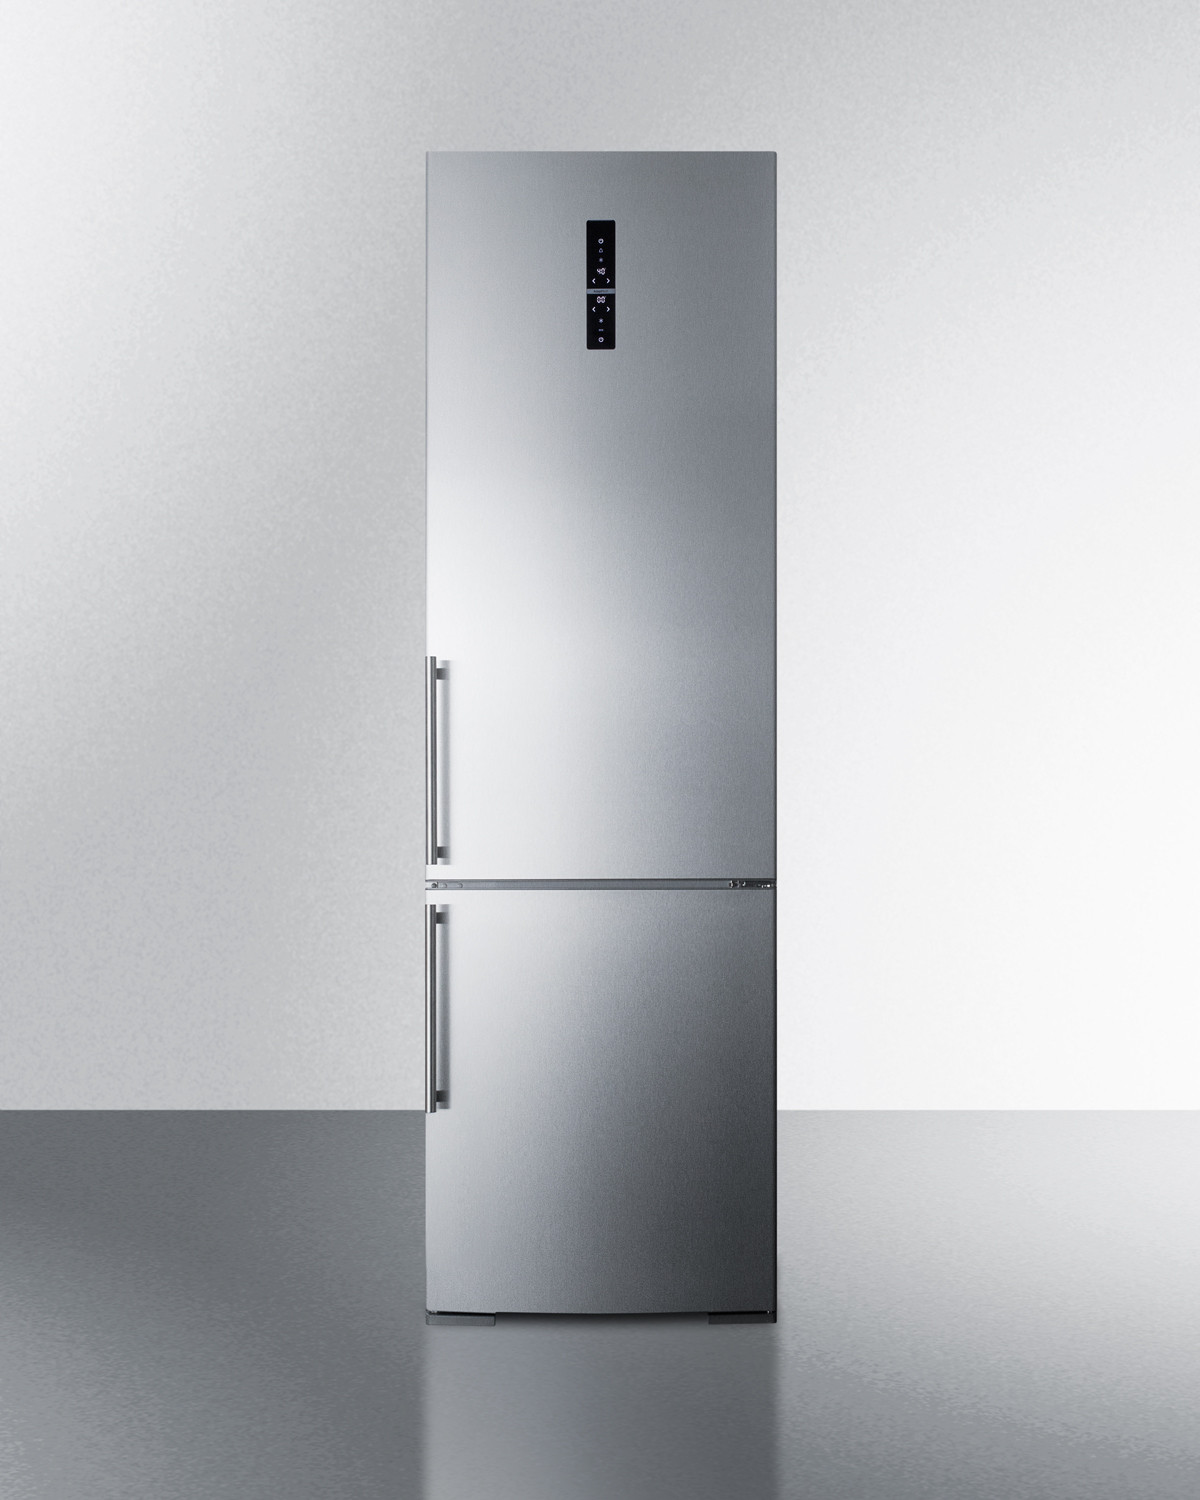 https://www.ajmadison.com/ajmadison/images/large_no_watermark/summit_bottom_freezer_refrigerator_ffbf181esbi_ffbf181esbiim_1_827de.jpg